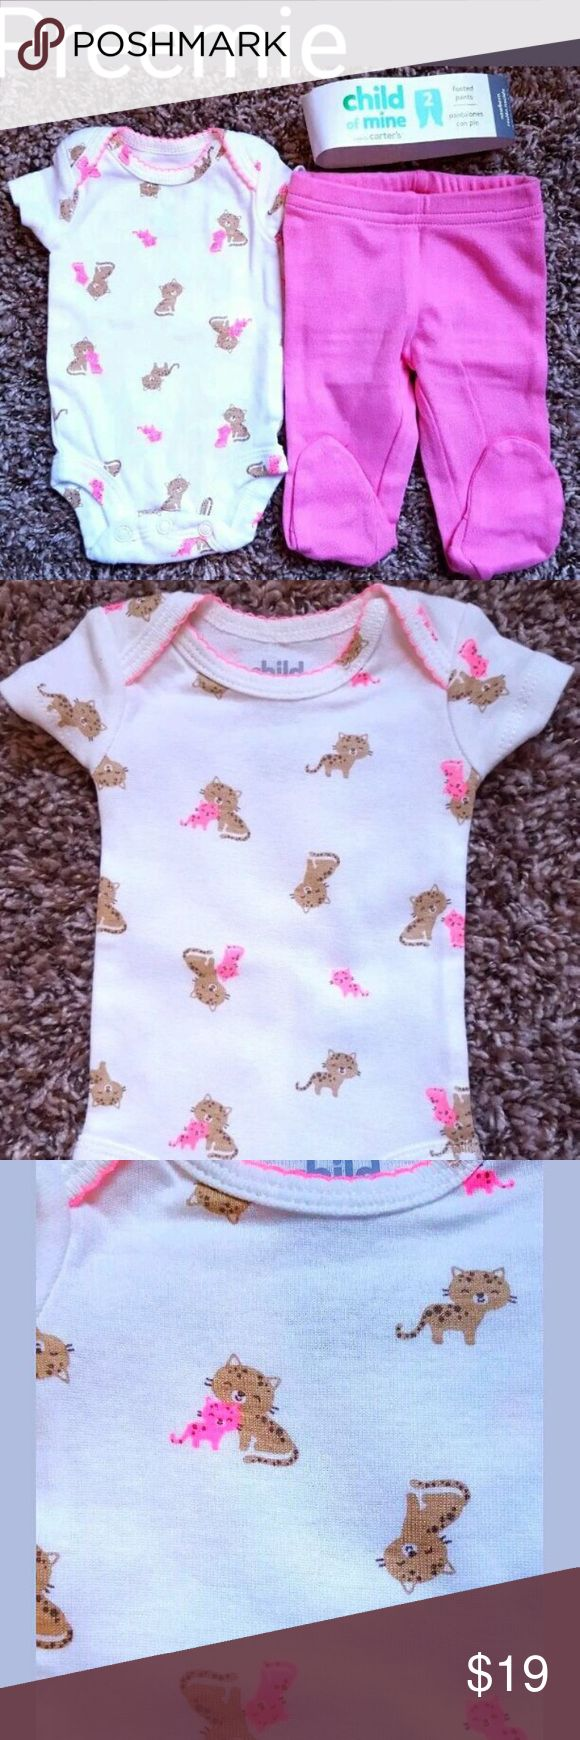 Girl's Sz Preemie NWOT Carter's Kitten Top, Pants Item Inv # Psh-14,15,16   Girl's Two Piece Outfit    -White/ Pink/ Tan Kitten Designed Top     -Solid Pink Footed Pants   By Child Of Mine Carter's     Size - Preemie     New Out Of Package.  Removed from sets to pair as an outfit so does not come with the packaging.  Items have been gently washed.   First photo shows what will come in your shipment as I have included what packaging I could from the separated sets.  This outfit will come with…